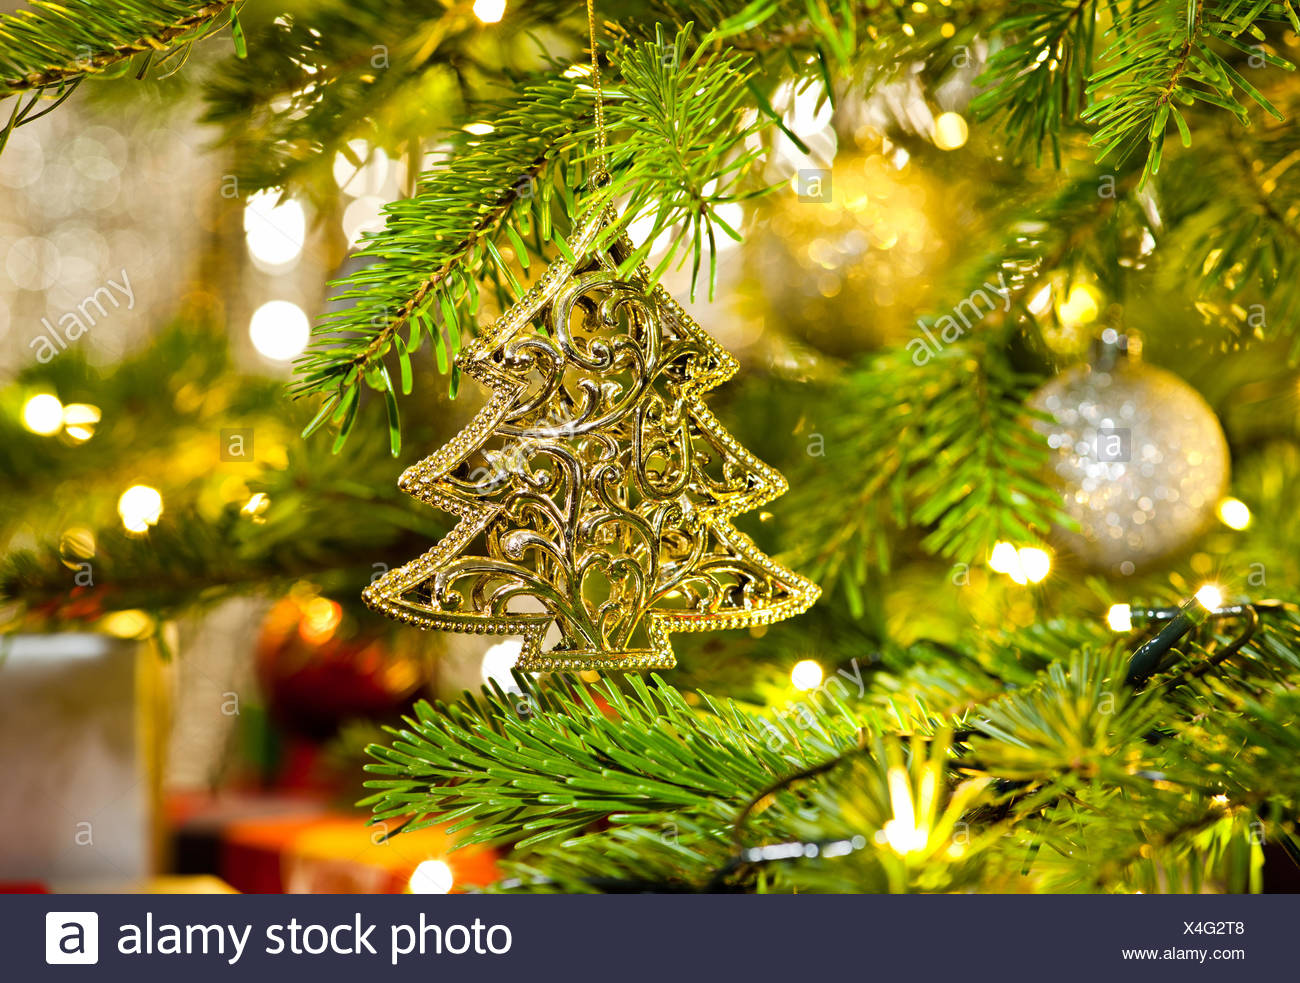 Xmas Ornament in a real Christmas tree in bright color Stock Photo ...